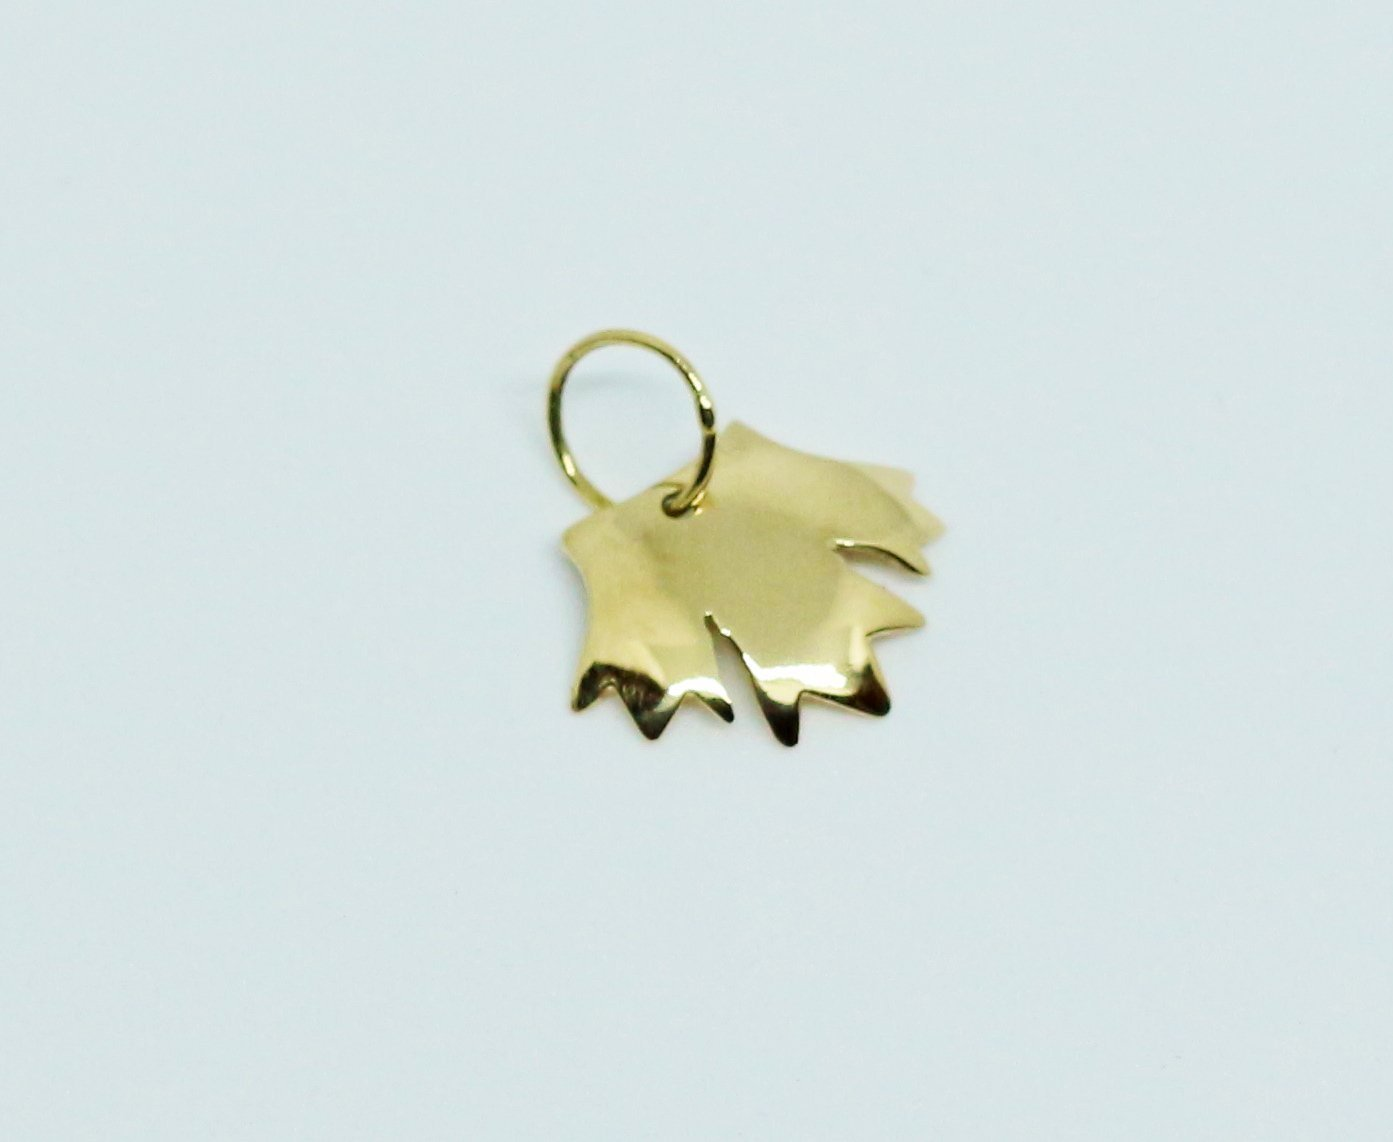 Sale 29% Off: Canada Day Special offer - Gold 14k Handmade Maple Leaf Pendant